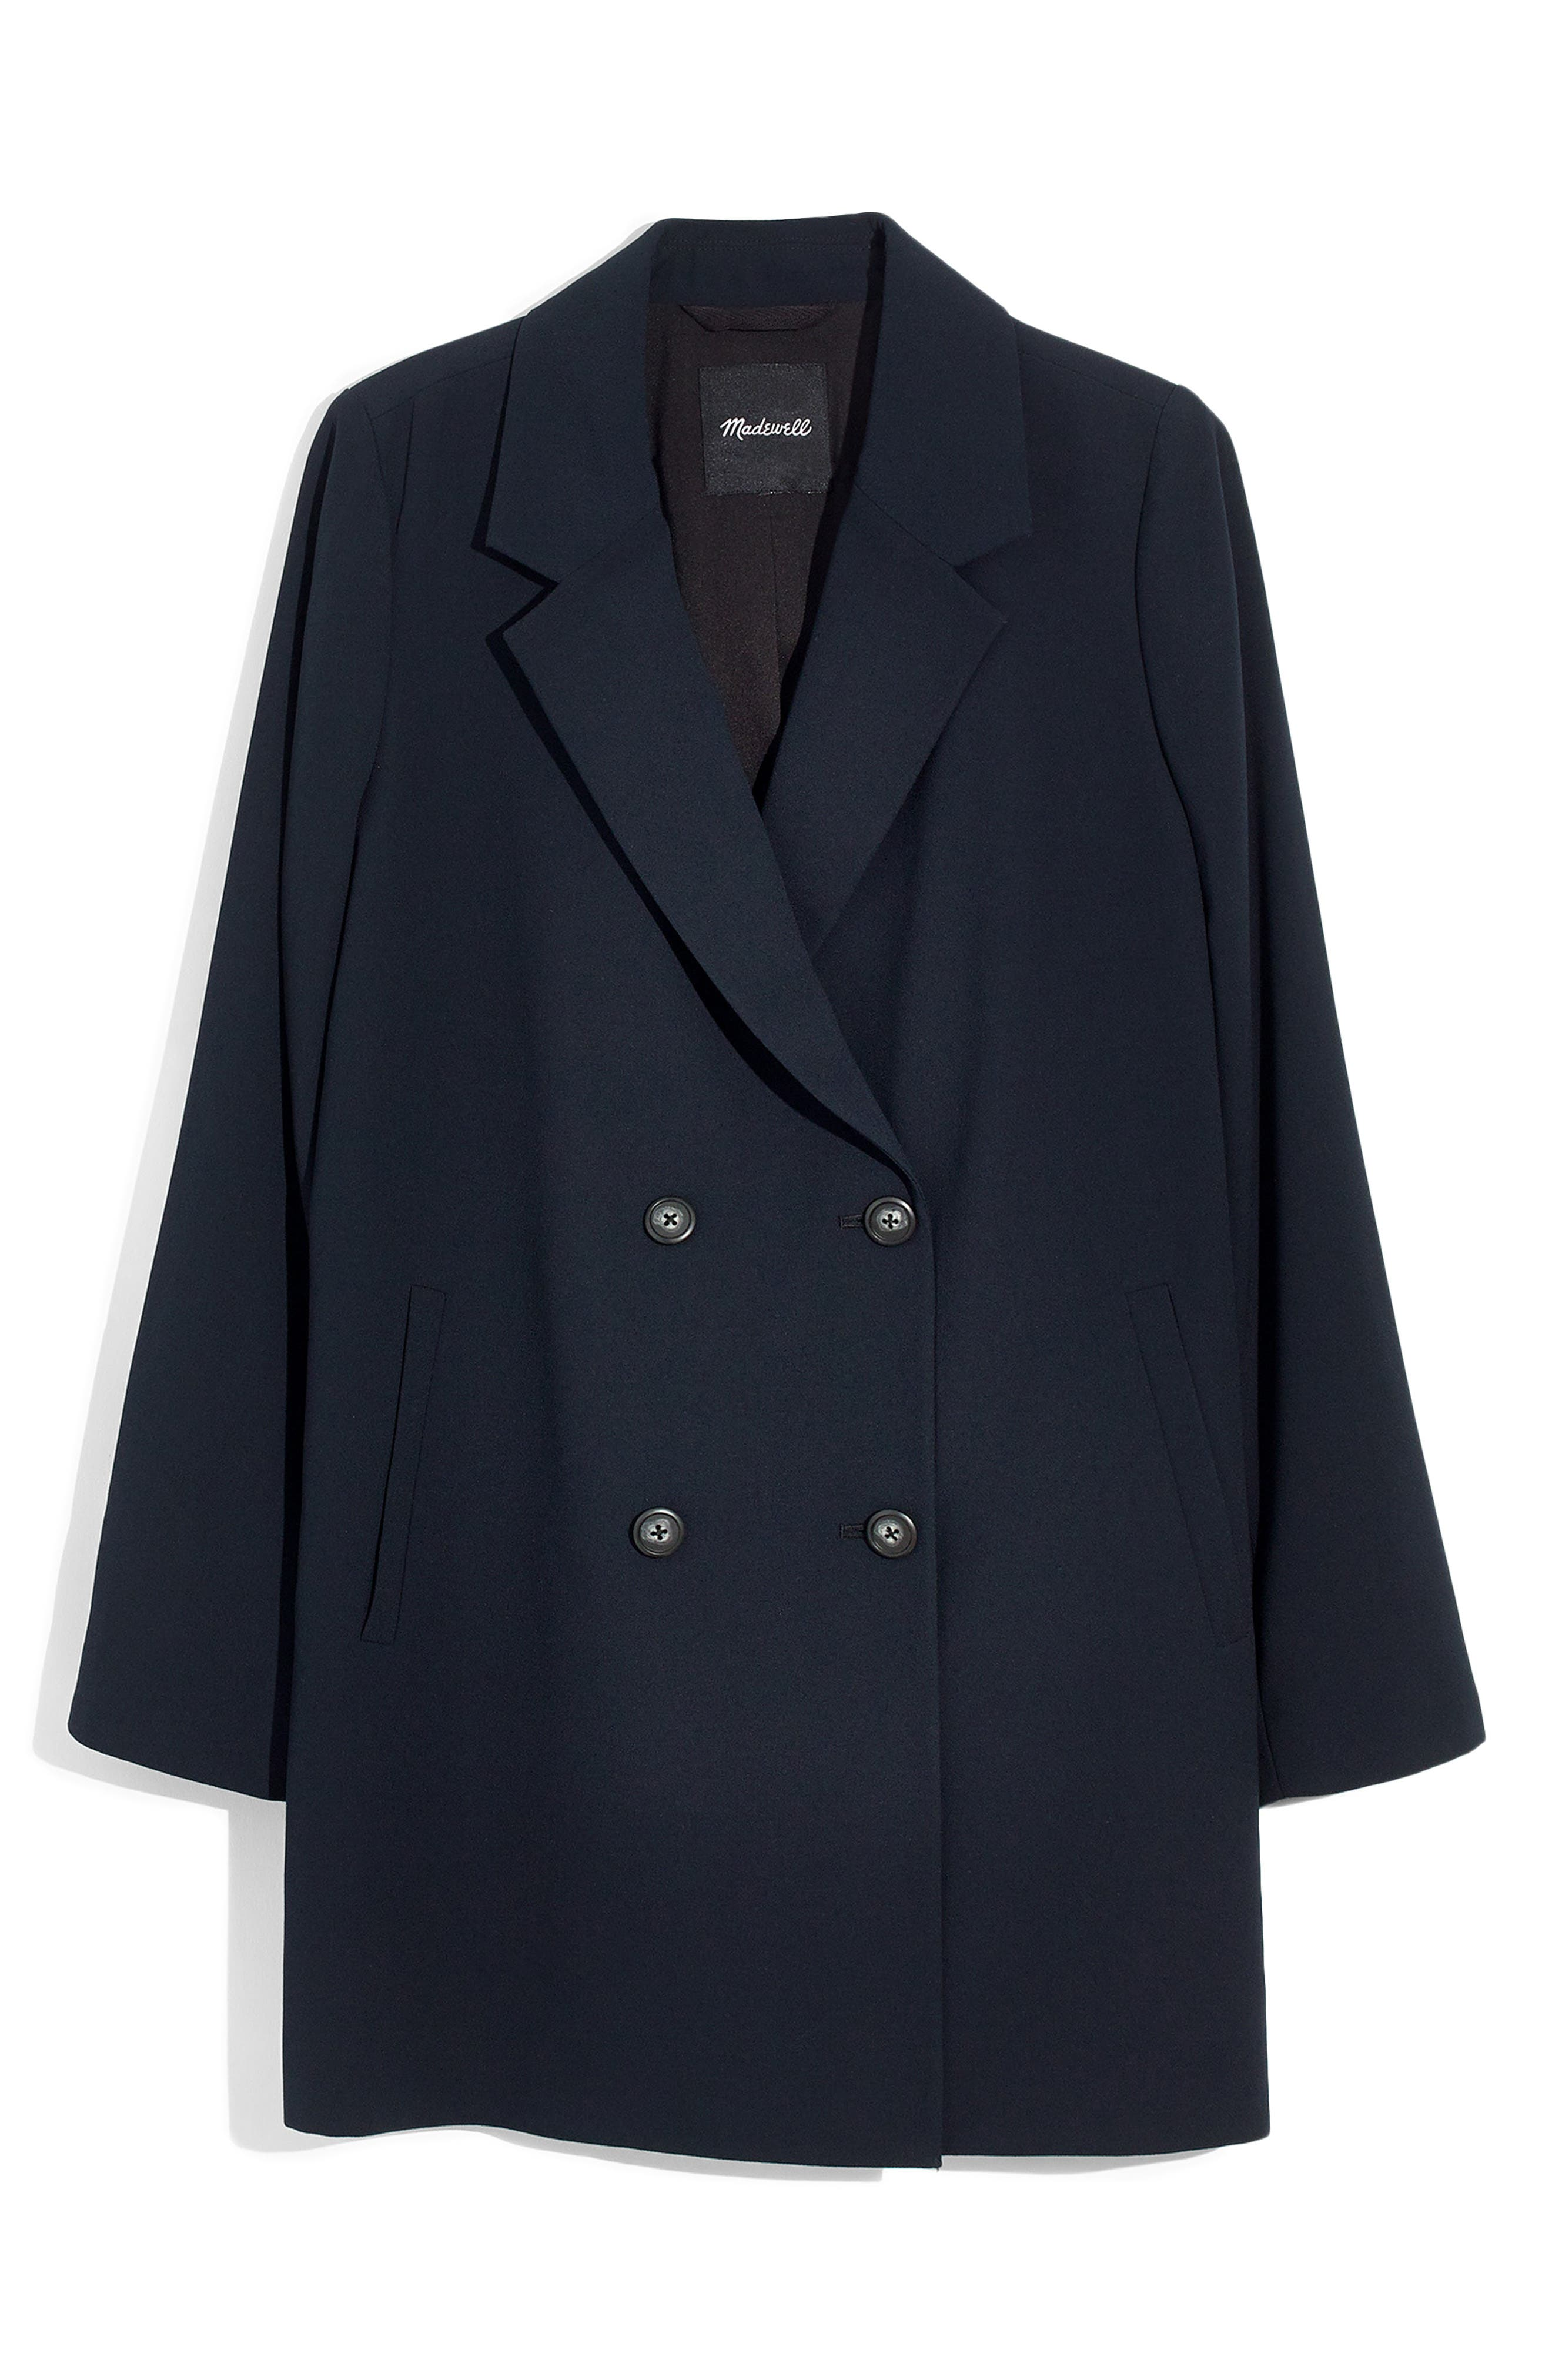 Caldwell Double Breasted Blazer,                             Alternate thumbnail 6, color,                             TRUE BLACK